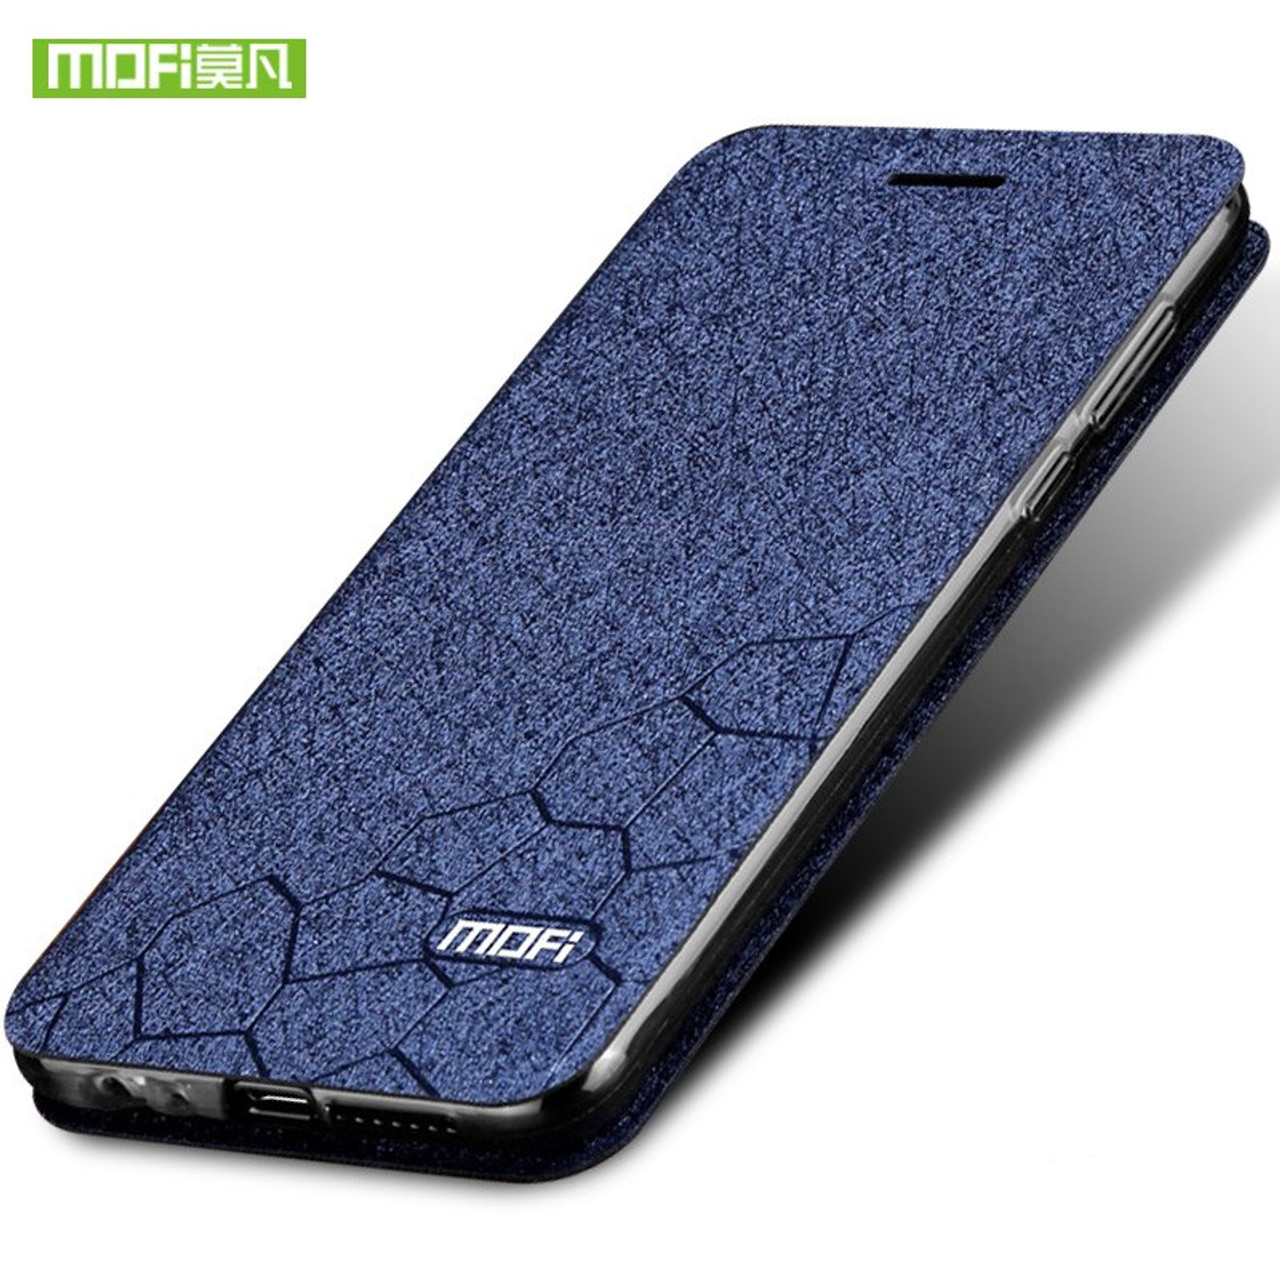 quality design 29b78 fe5f5 For Huawei honor 9 lite case cover silicon Huawei honor9 lite case luxury  flip leather wallet 9 Lite transparent tpu coques 5.65